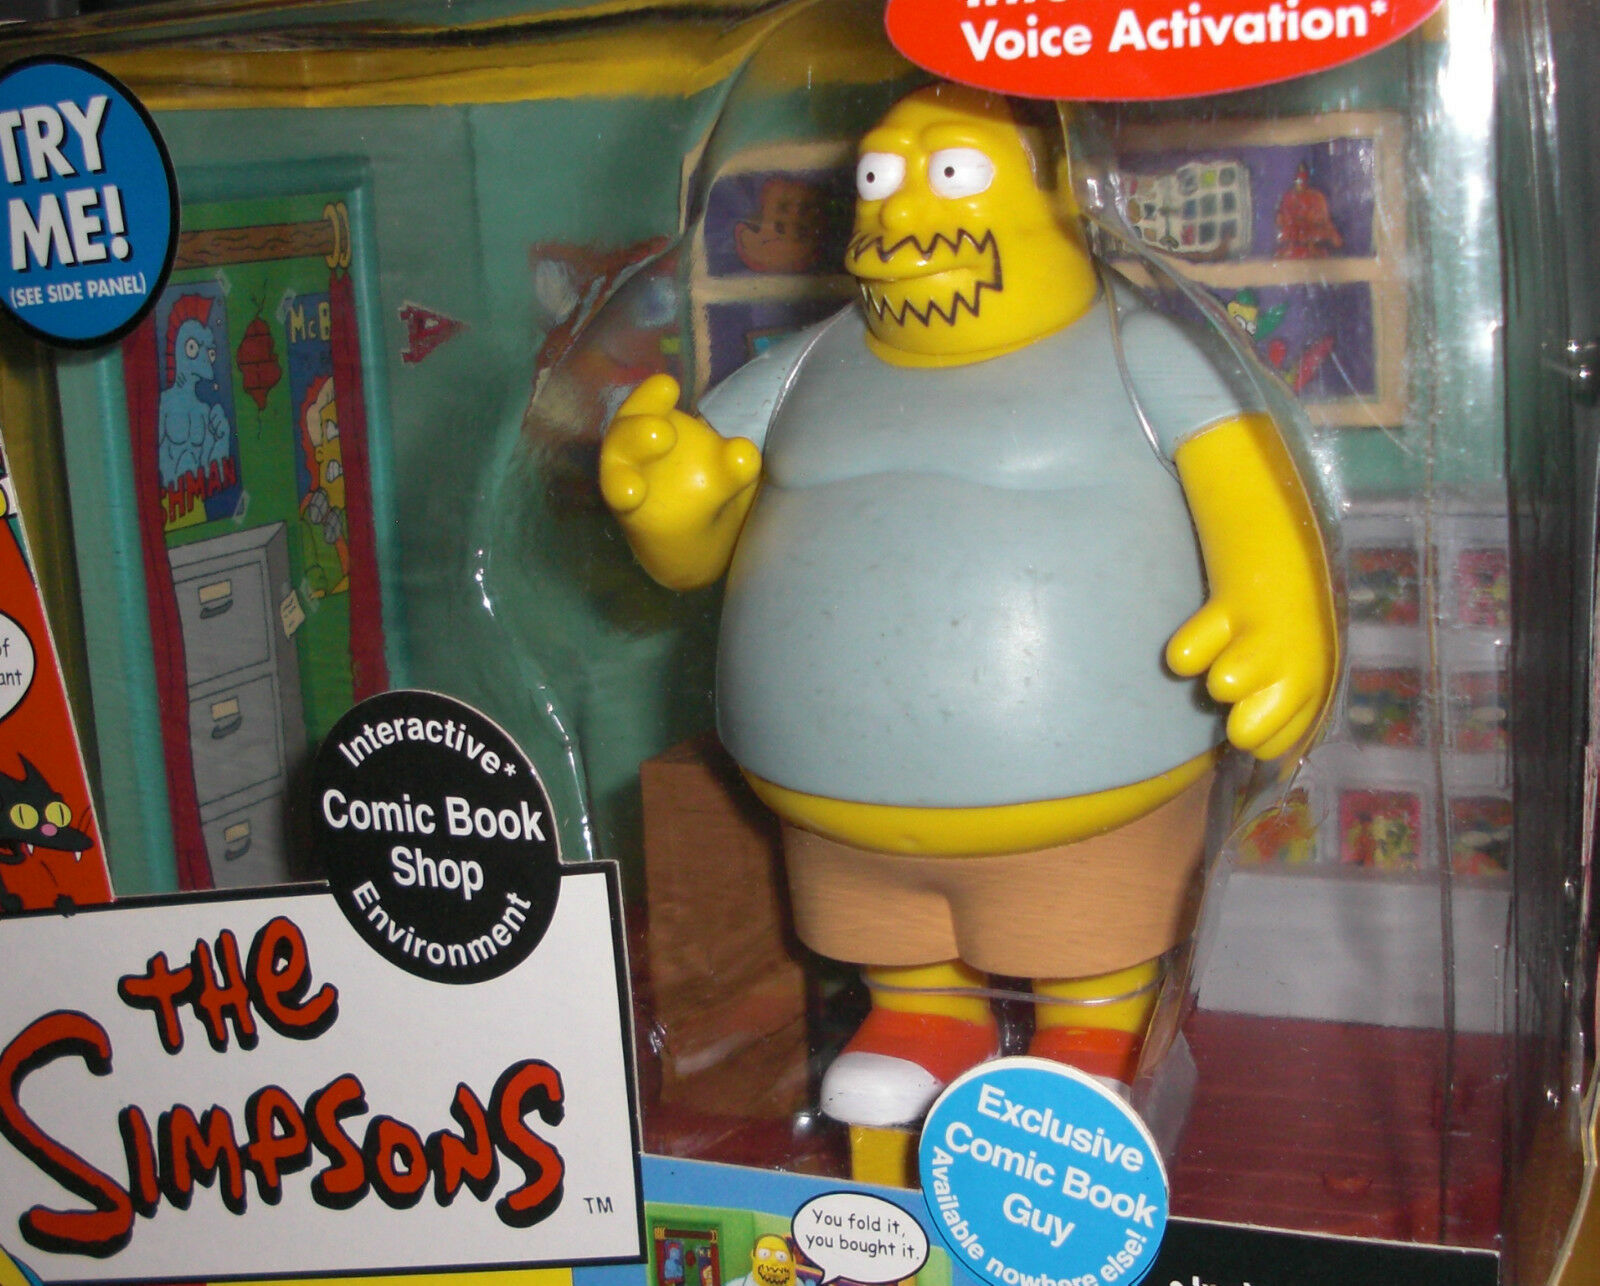 The Simpsons Interactive Exclusive Exclusive Exclusive Comic Book Guy Comic Book Shop NIB 03ed74